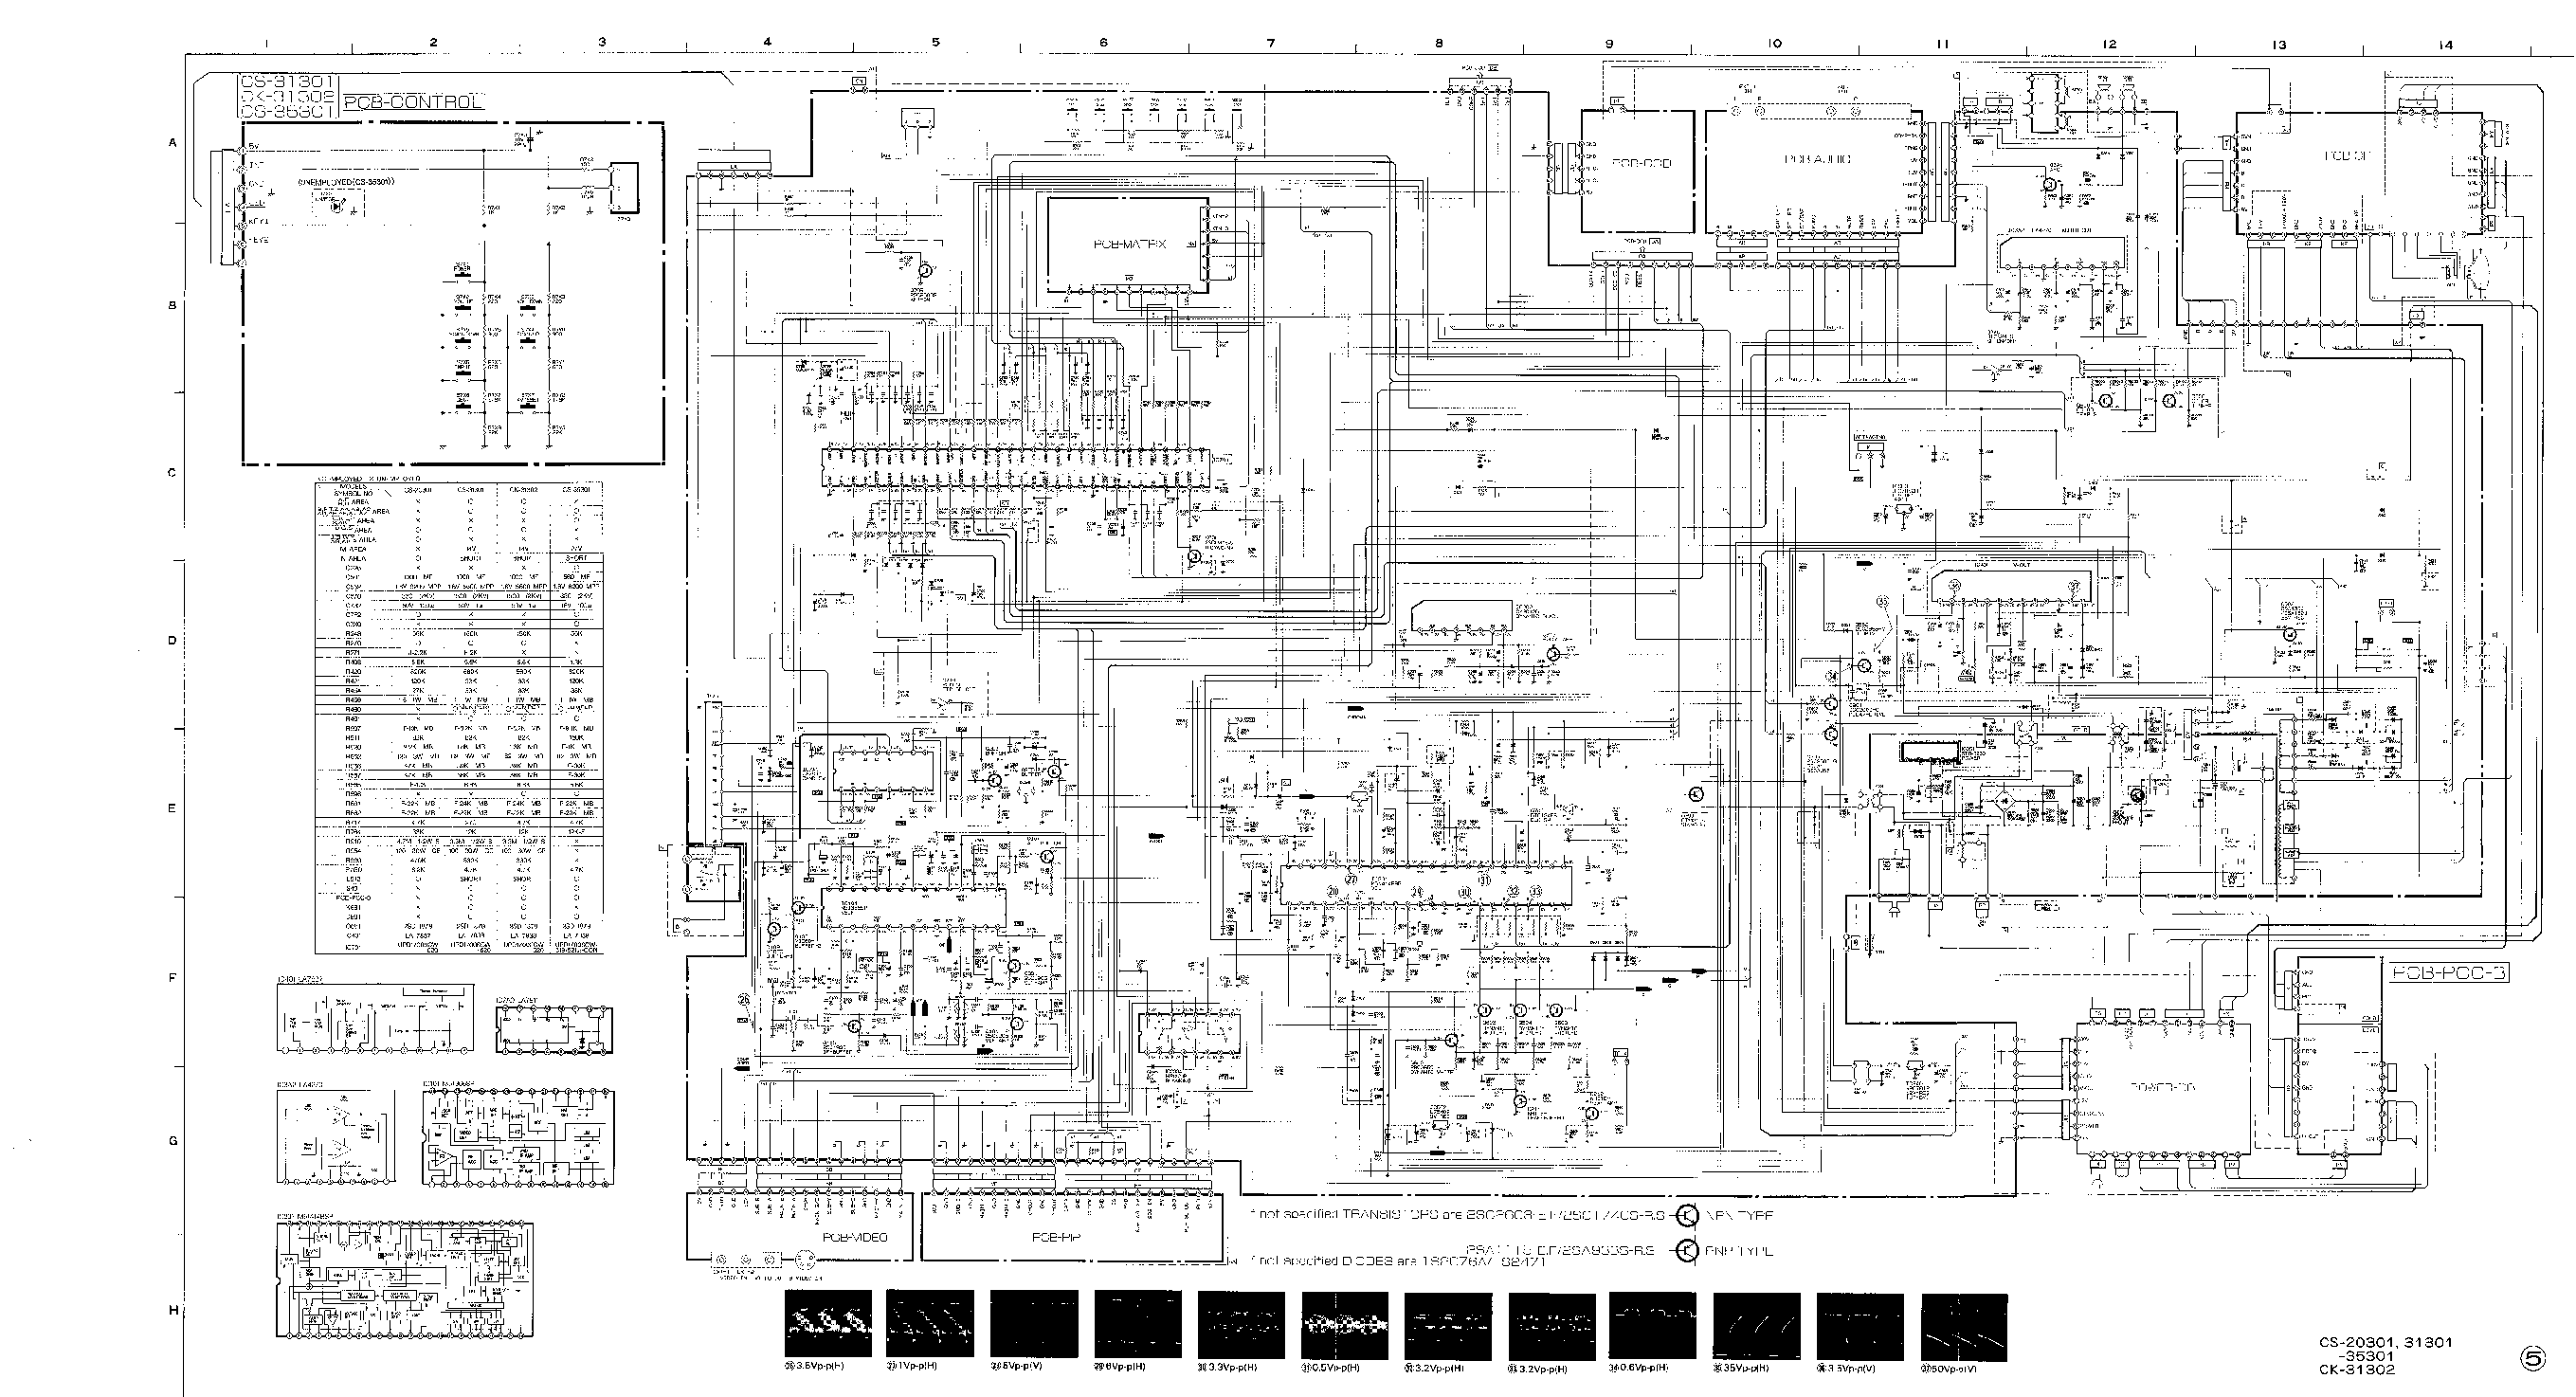 For mitsubishi tv schematics electrical drawing wiring diagram mitsubishi cs 20301 chassis xm1 sch service manual download rh elektrotanya com 1999 mitsubishi mirage radio schematic mitsubishi galant schematics freerunsca Image collections